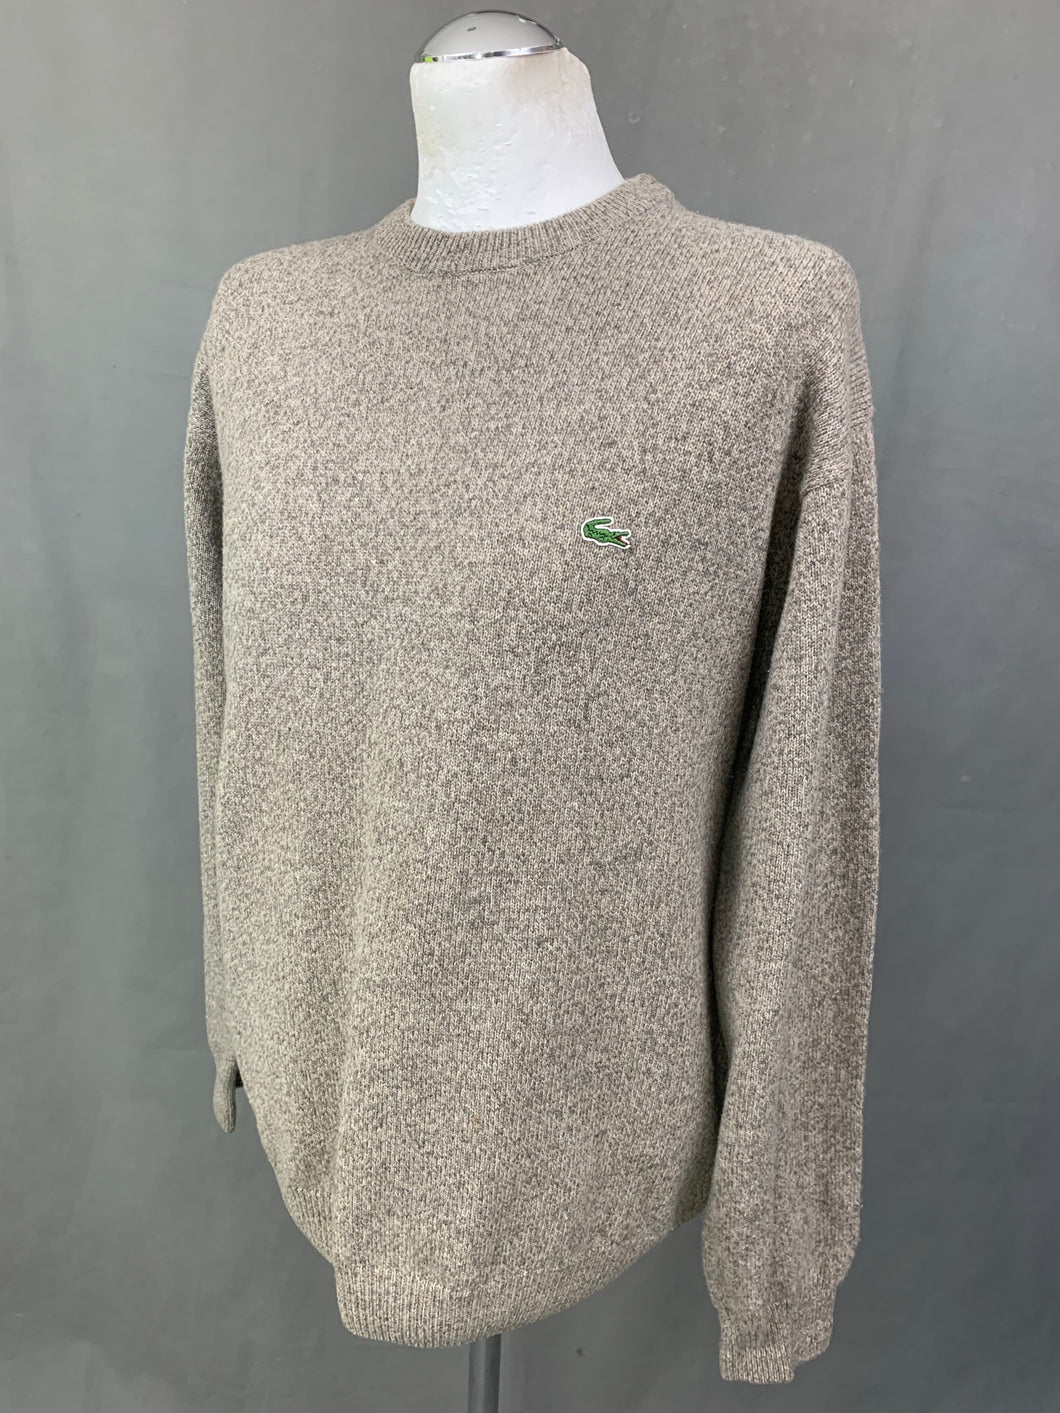 LACOSTE Mens Virgin Wool Crew Neck JUMPER Size 6 - Extra Large XL